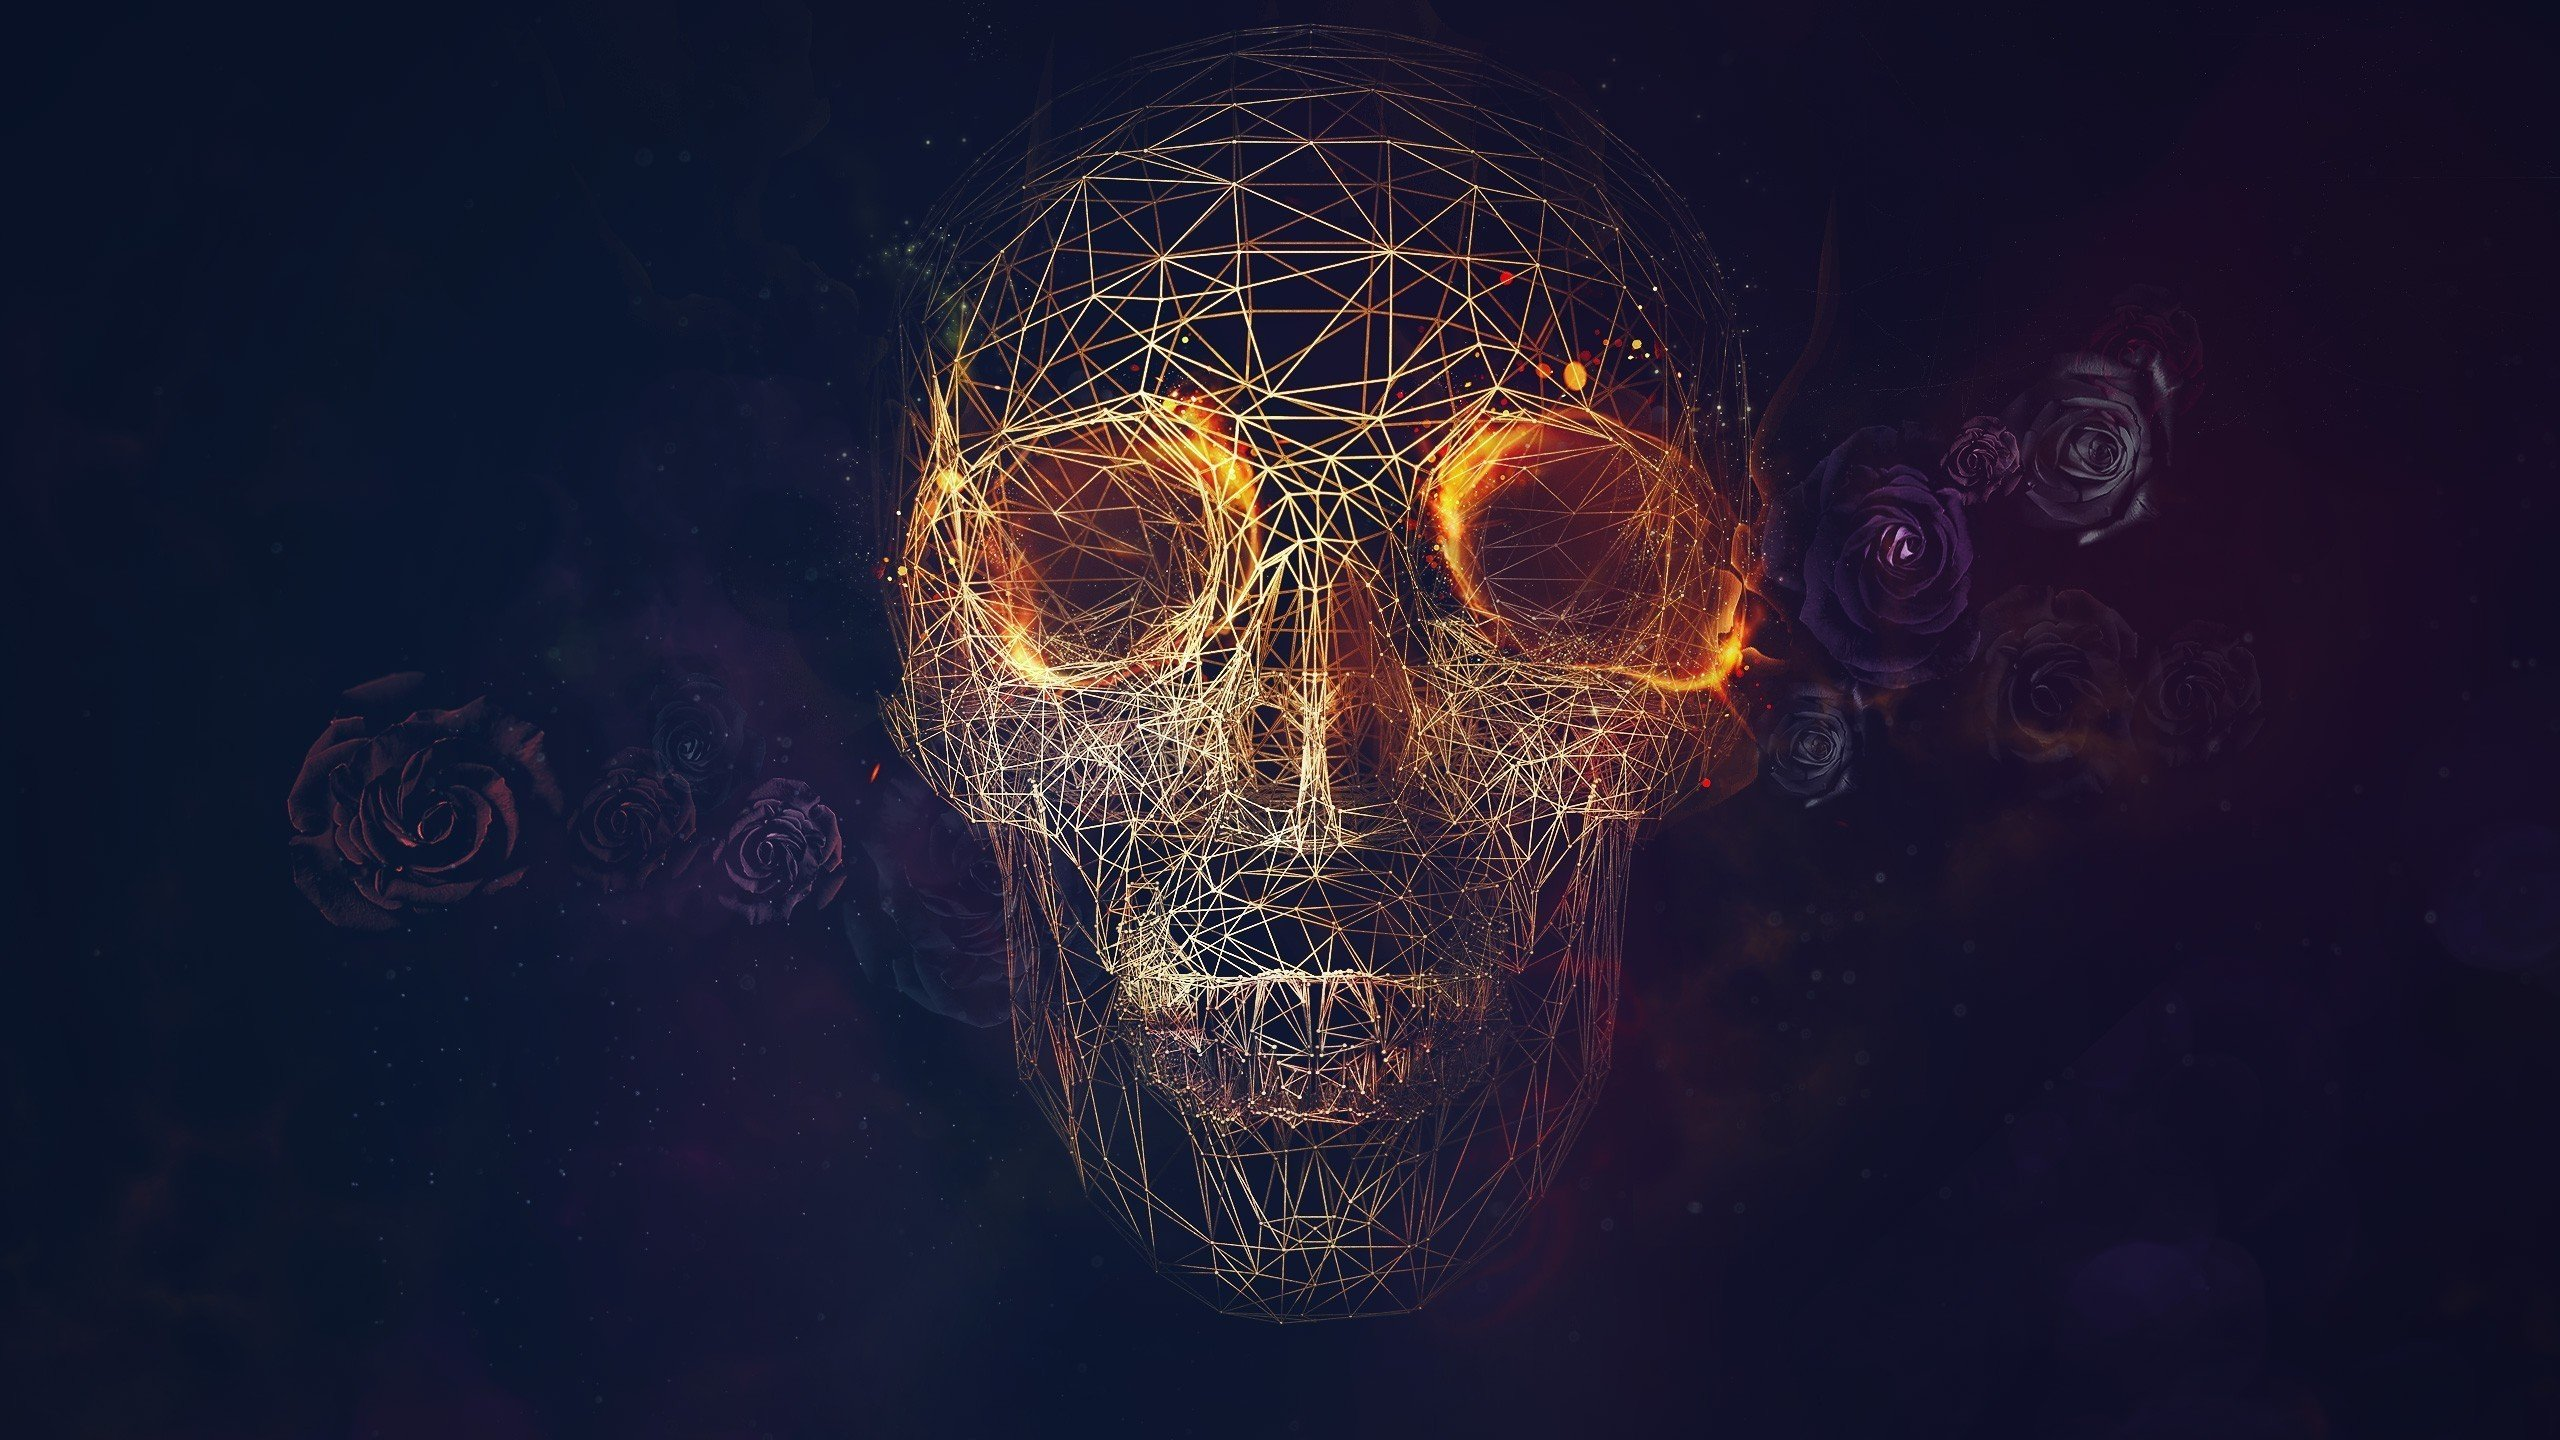 Skull 4K wallpapers for your desktop or mobile screen free ...